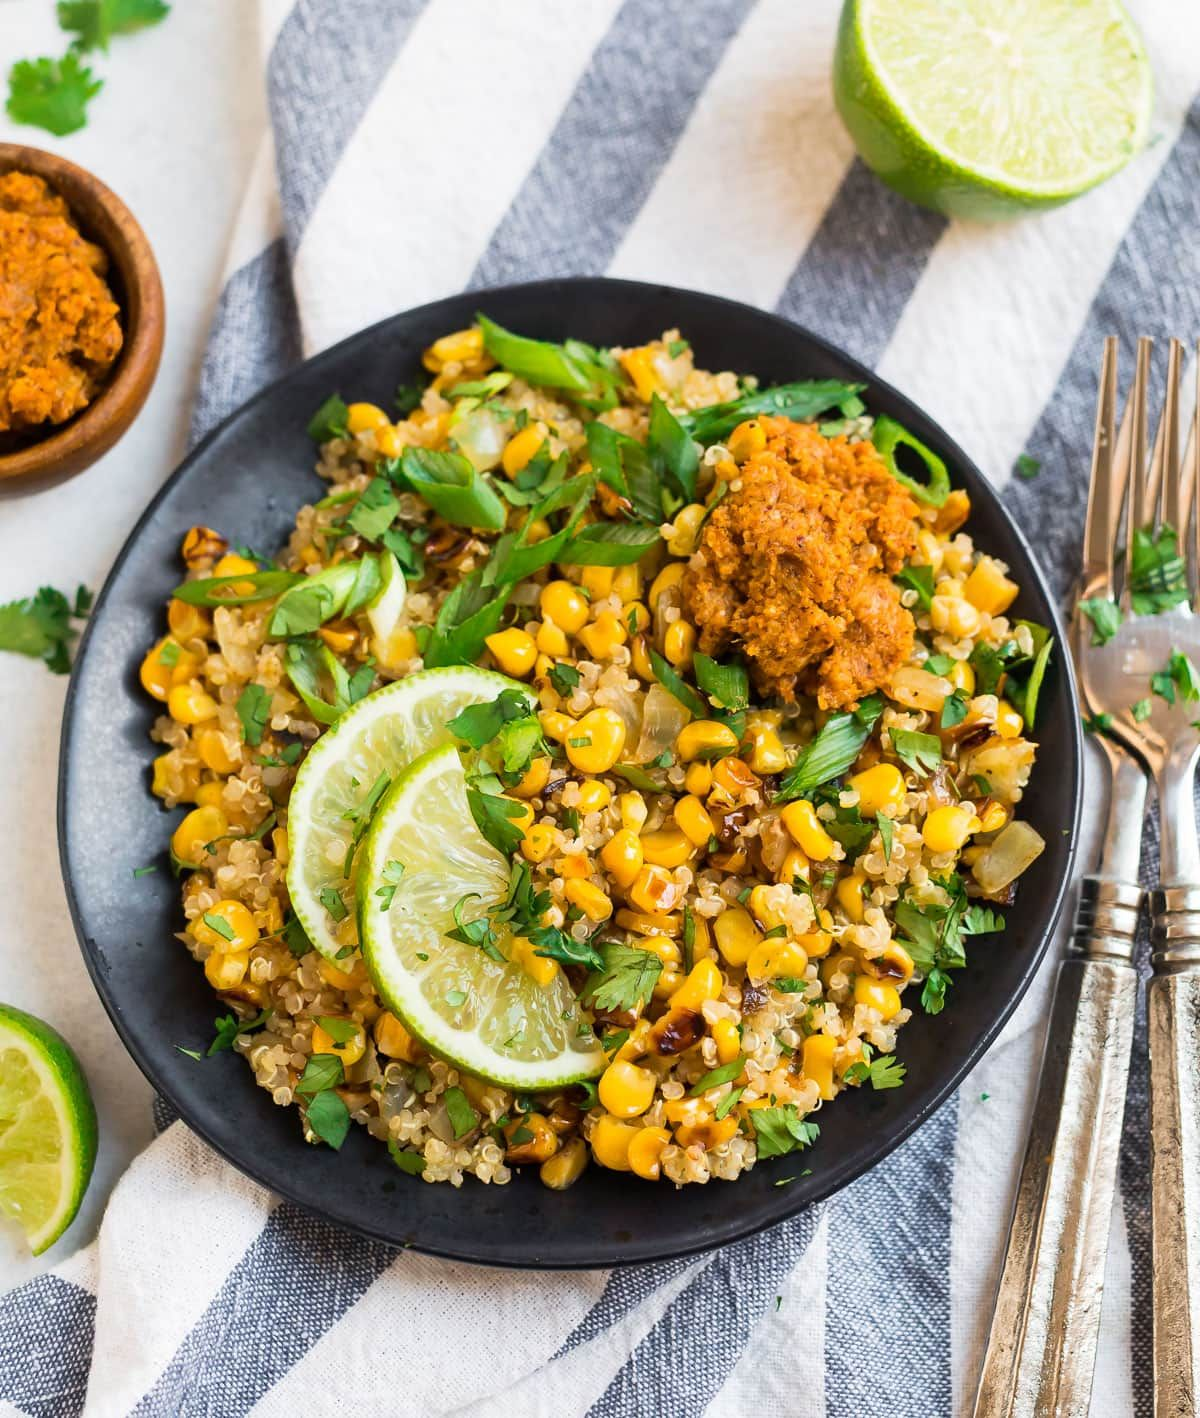 Healthy Mexican Street Corn Quinoa Salad This Tasty Side